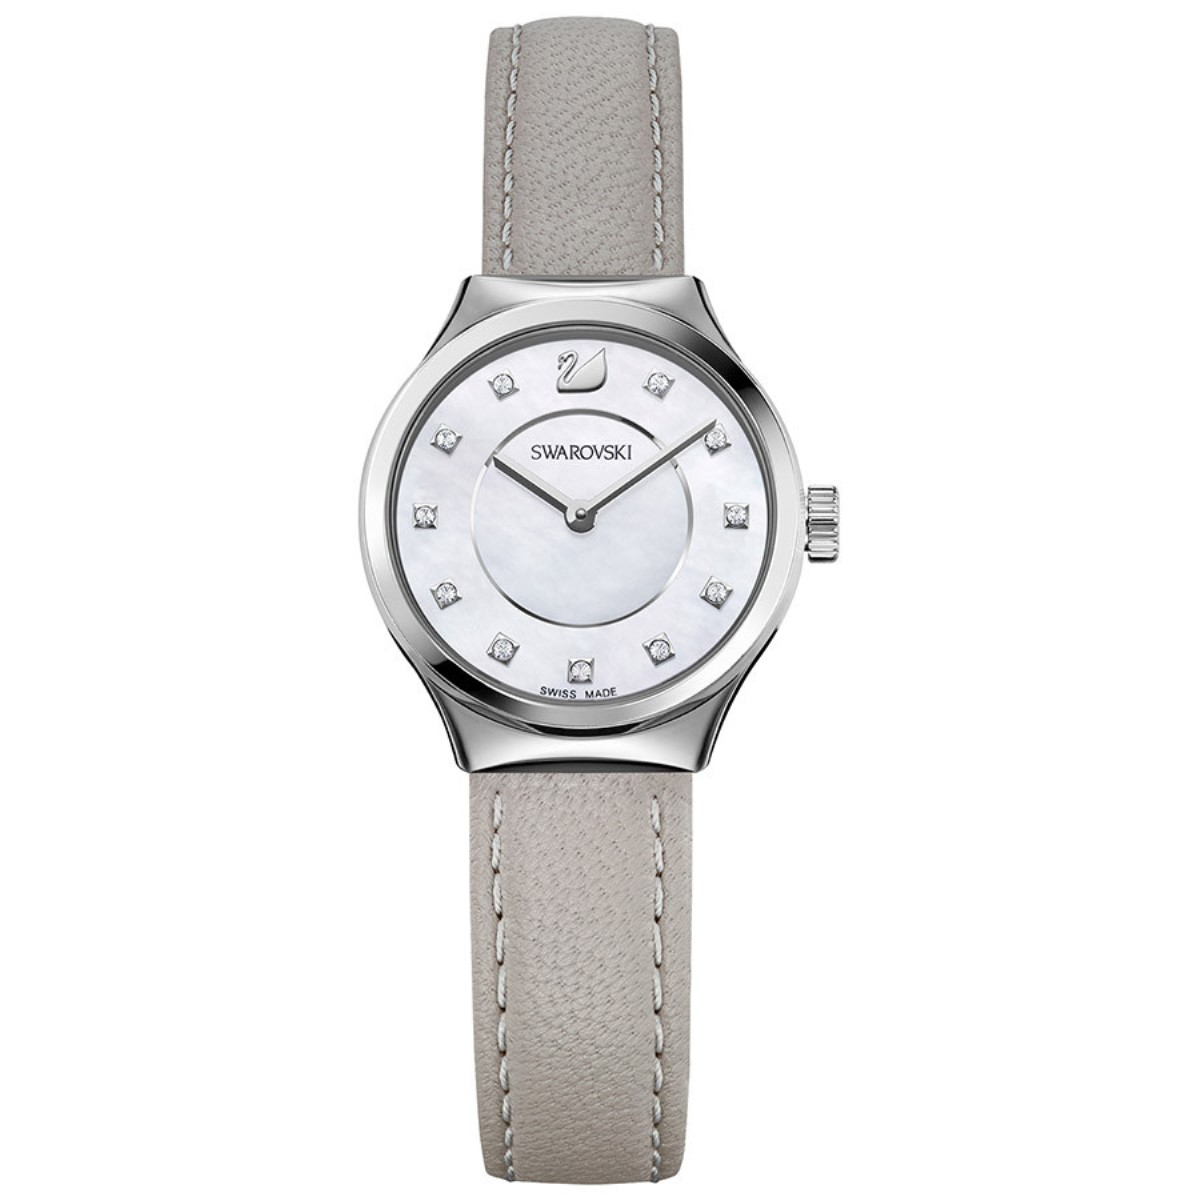 Swarovski 5219457 Dreamy Pearl WatchMother About Details Of LzpSUjMqVG